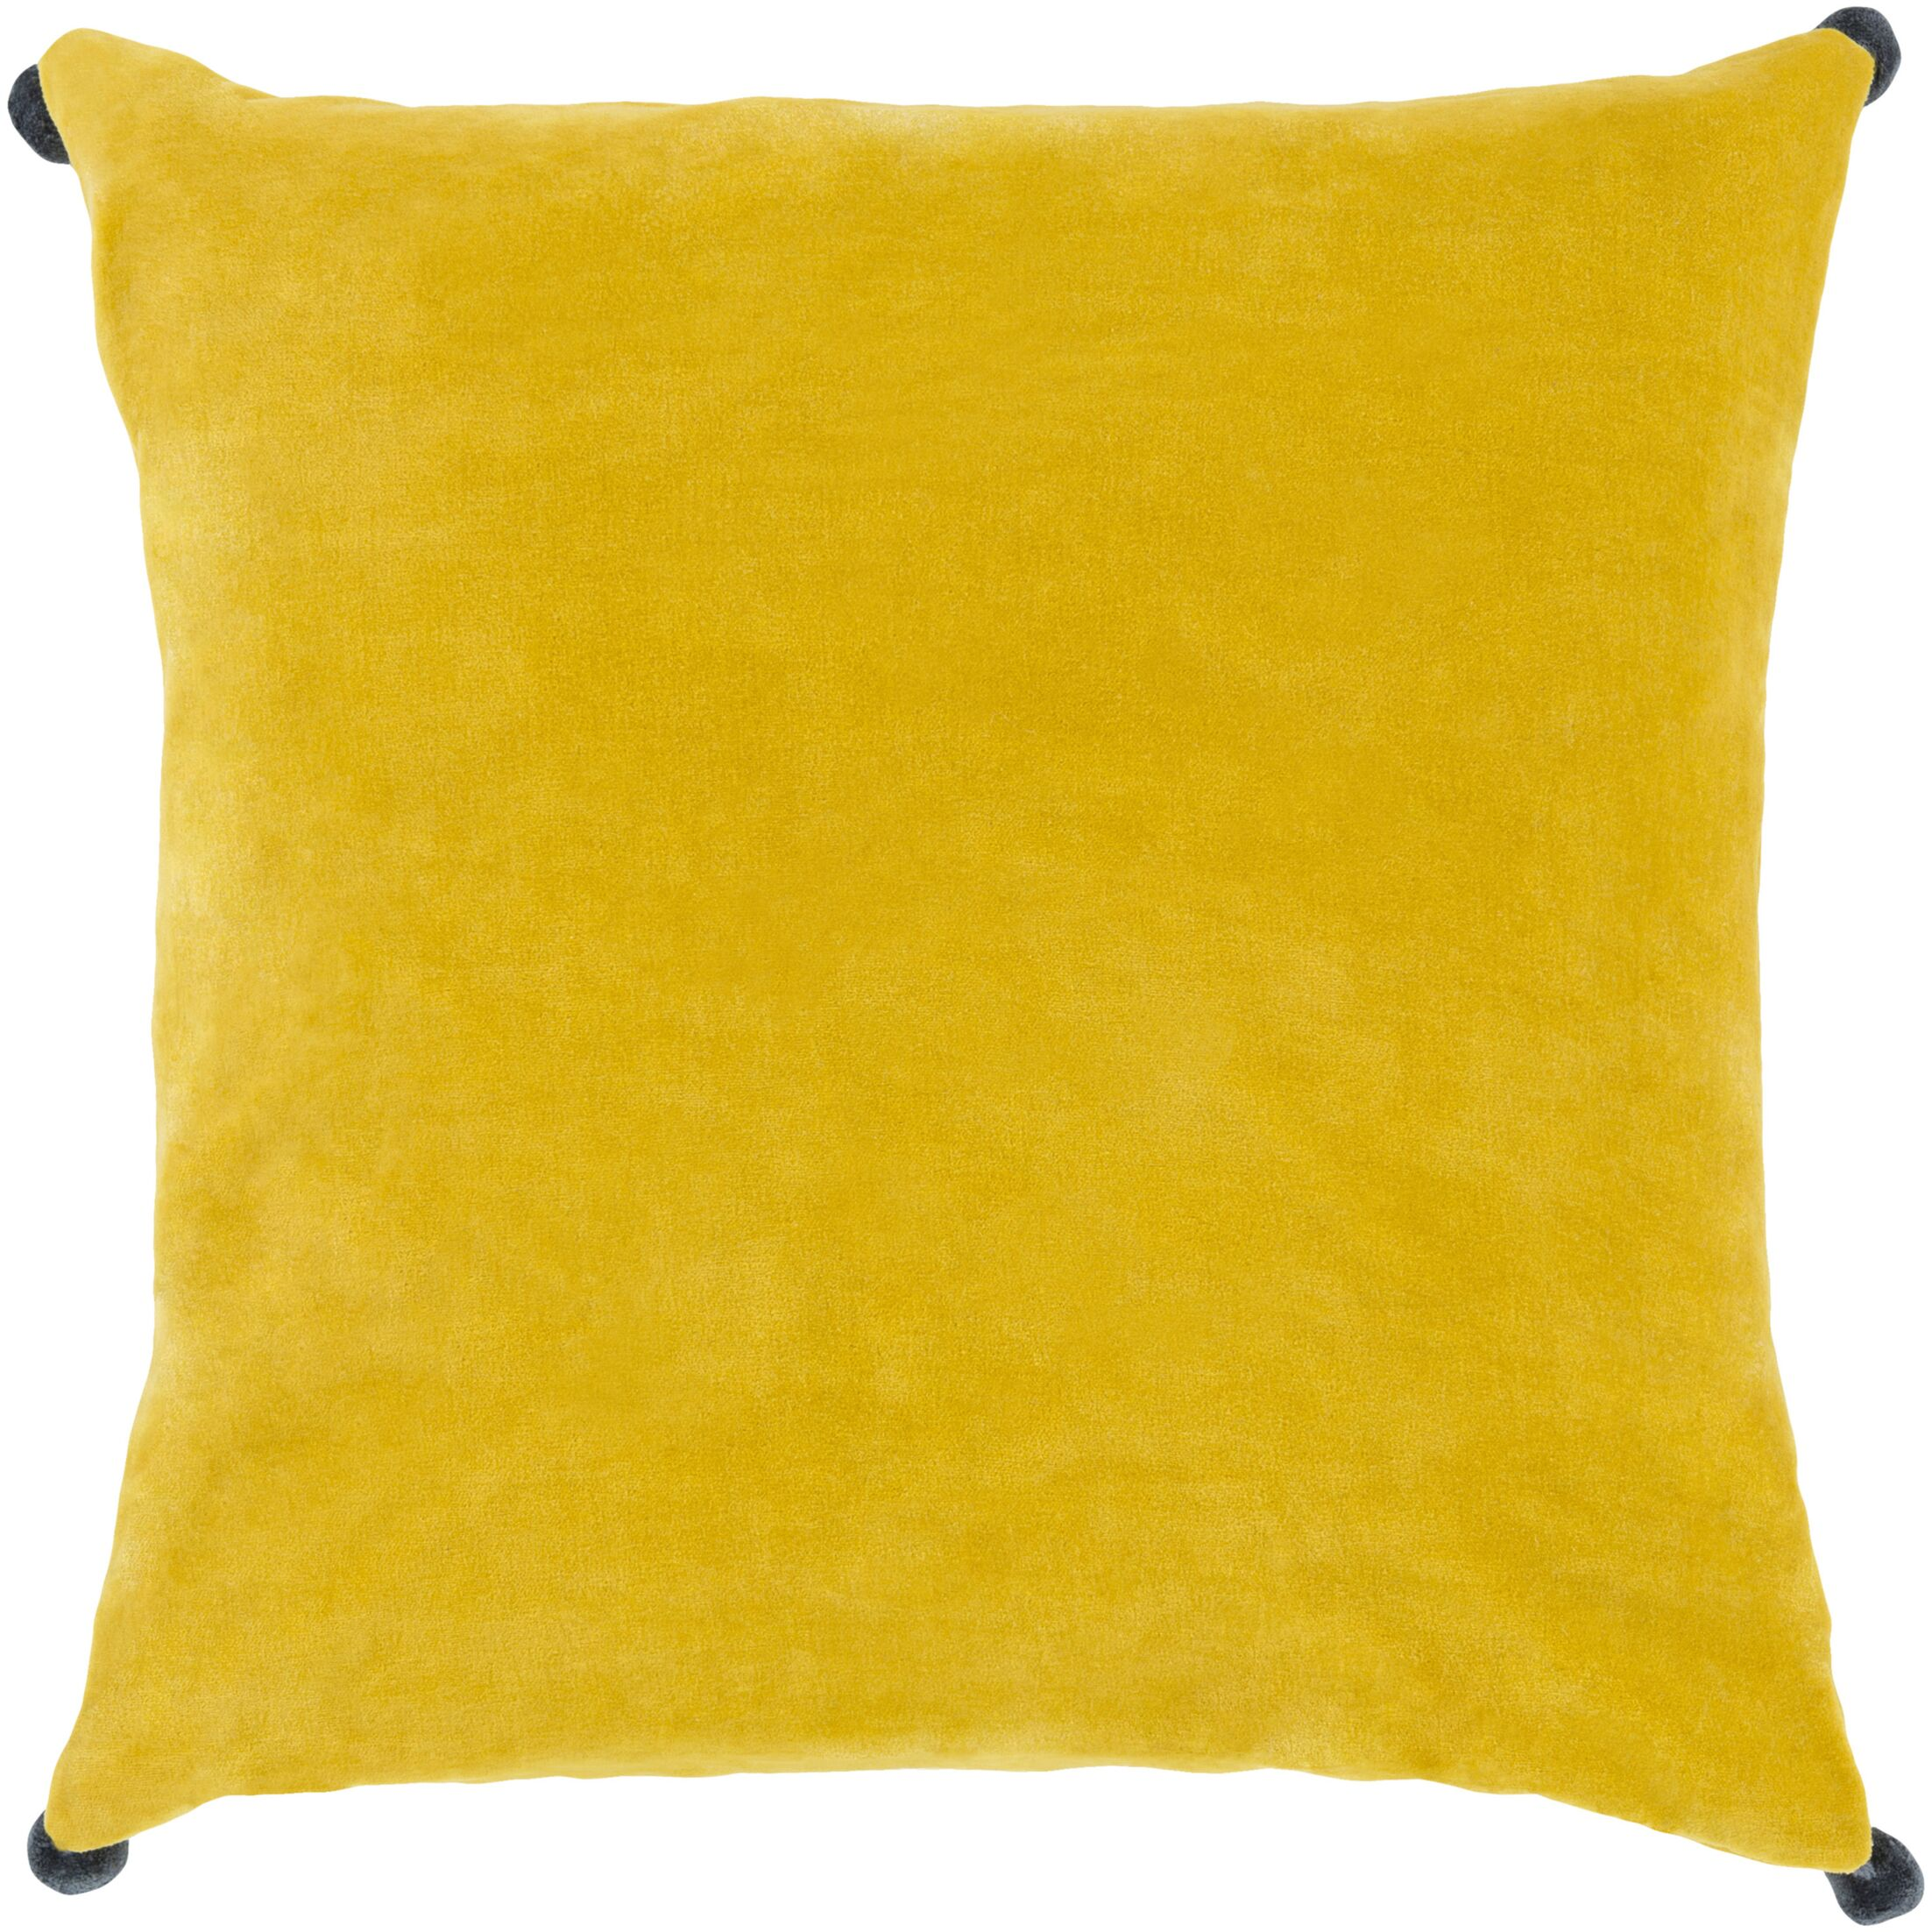 Yvonne Poms Velvet Throw Pillow Cover Size: 22